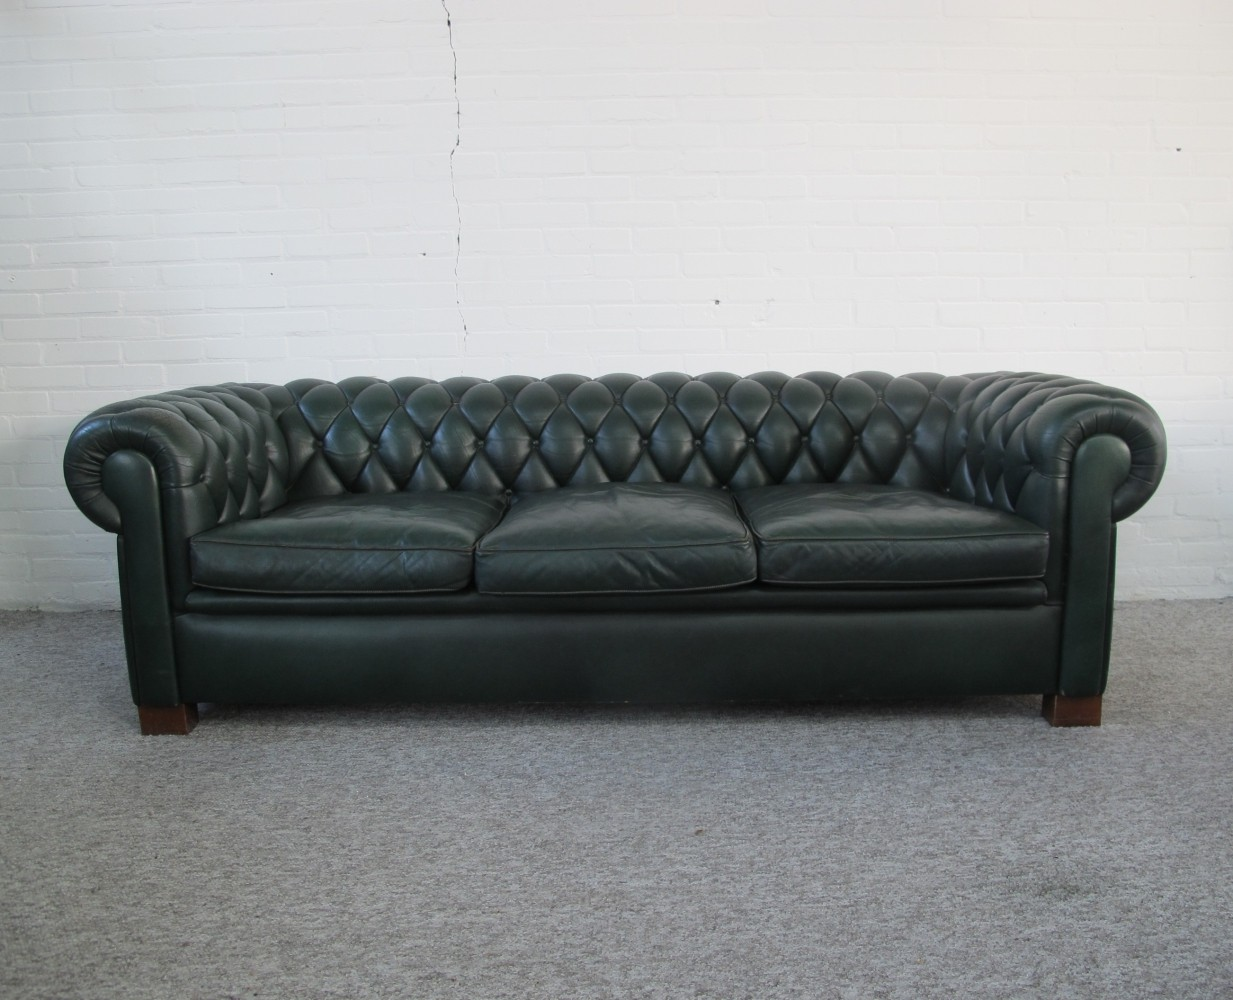 original english chesterfield sofa in green leather 1970s 93791. Black Bedroom Furniture Sets. Home Design Ideas